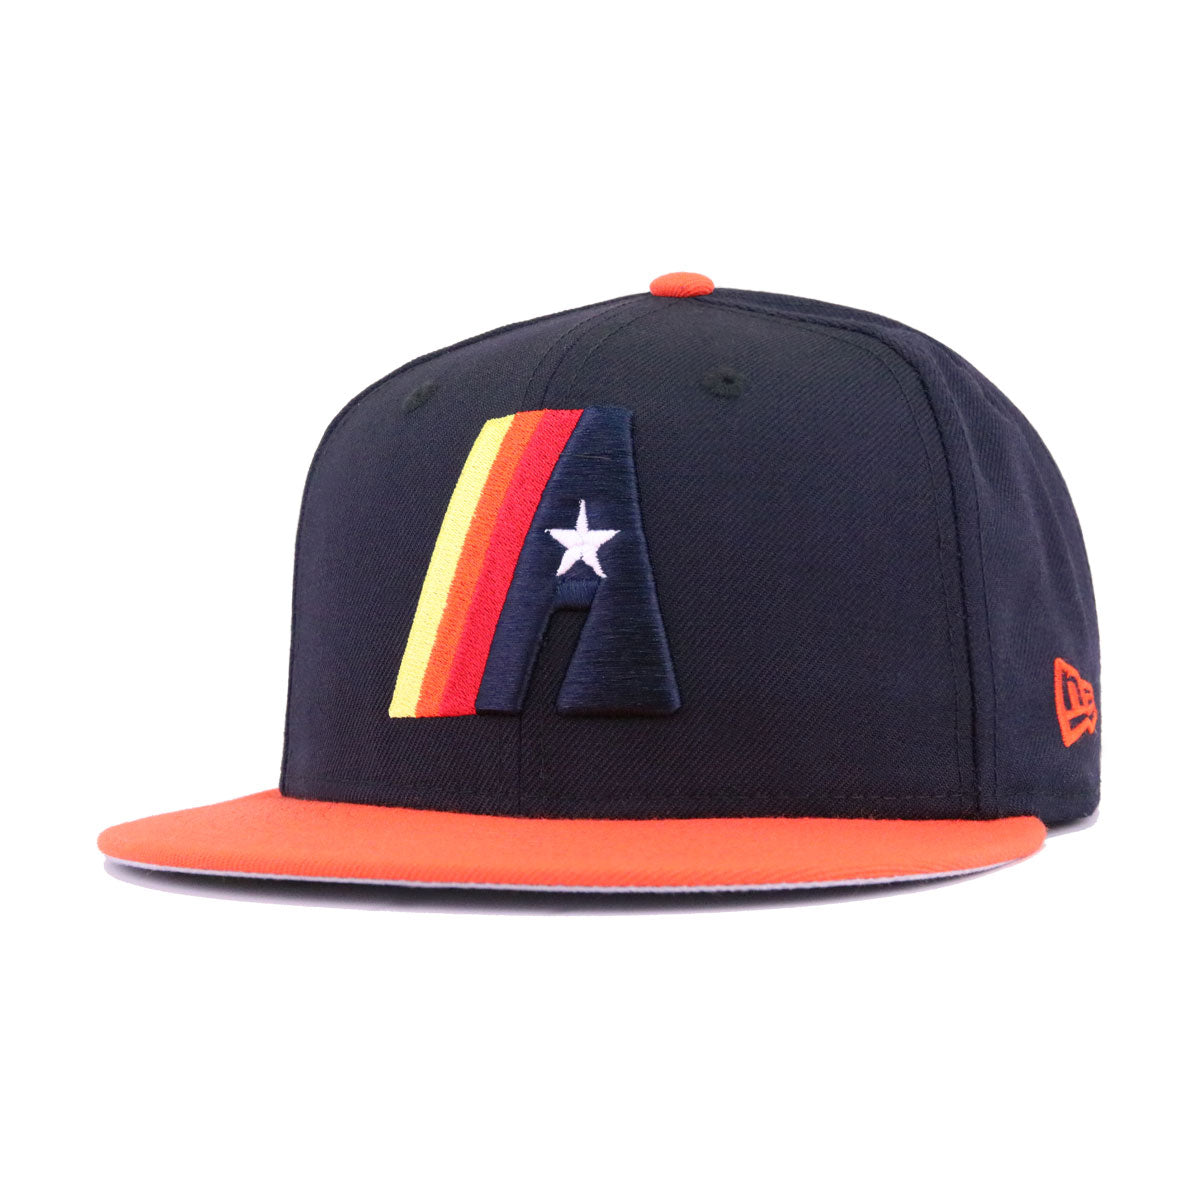 600a83028 Houston Astros Navy Orangeade Retro New Era 59Fifty Fitted